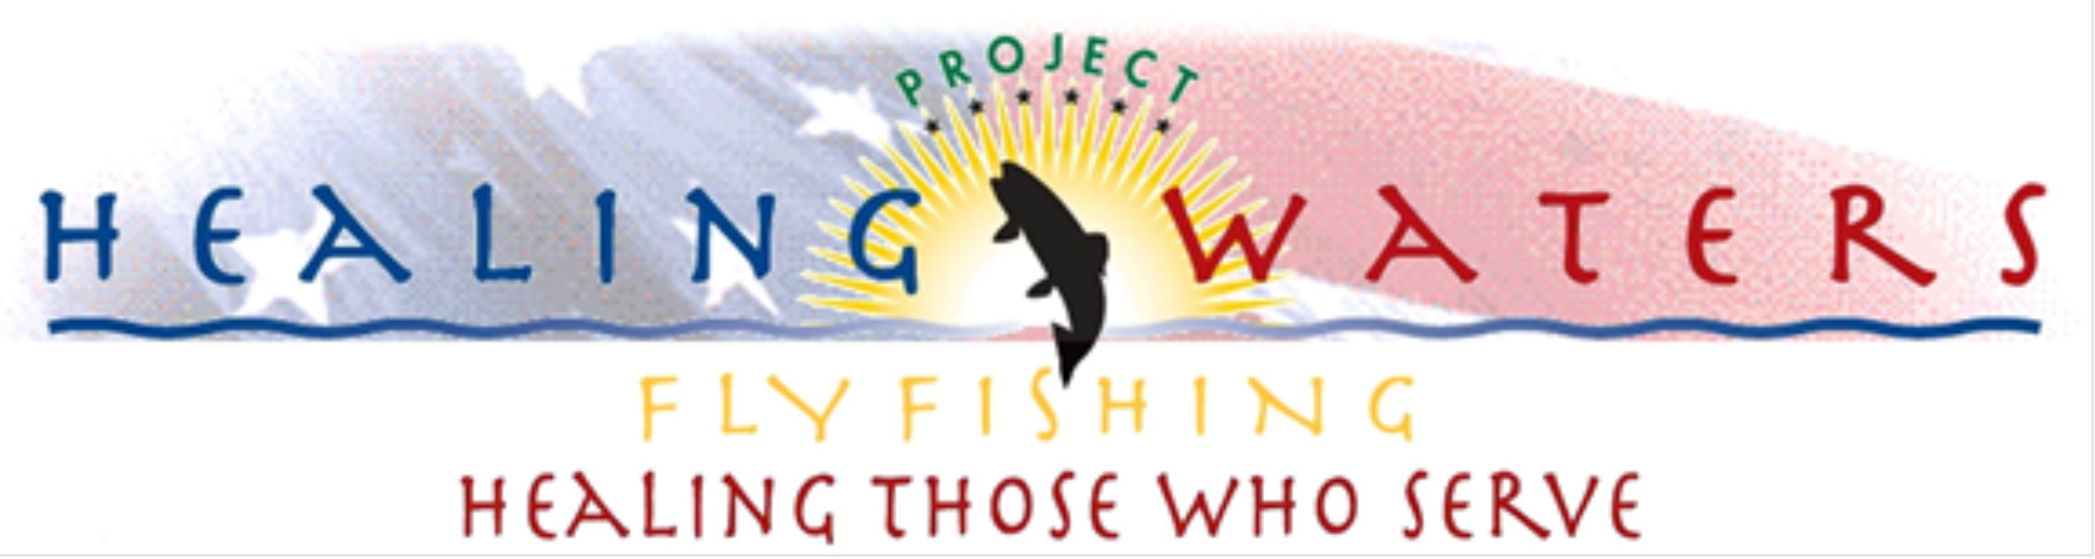 Project healing waters offering fly selectors chad pettrone for Healing waters fly fishing